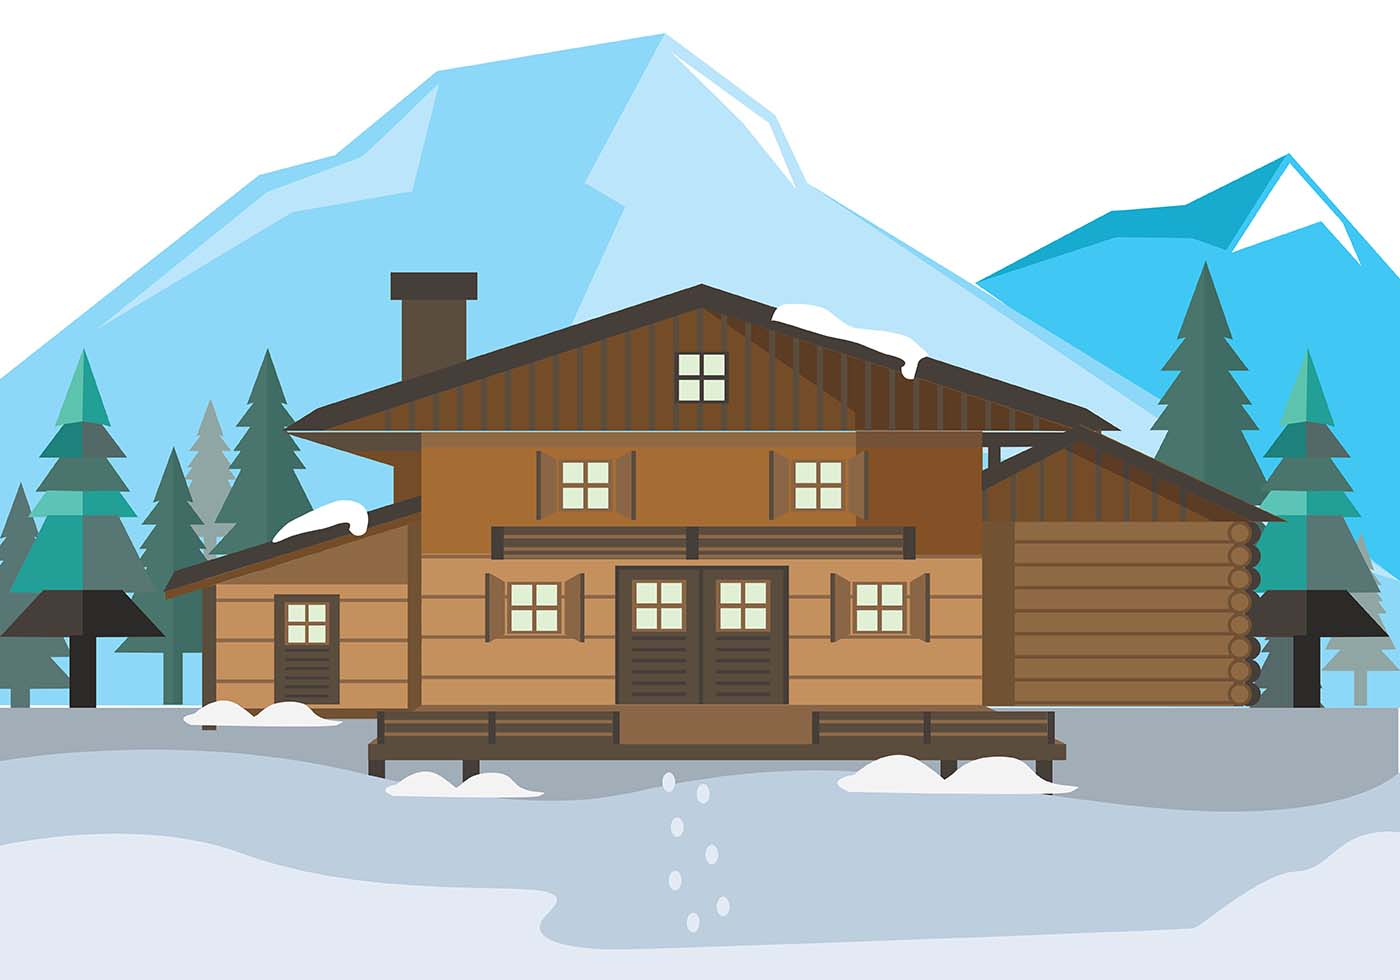 Mountain House Free Vector Art - (9662 Free Downloads)